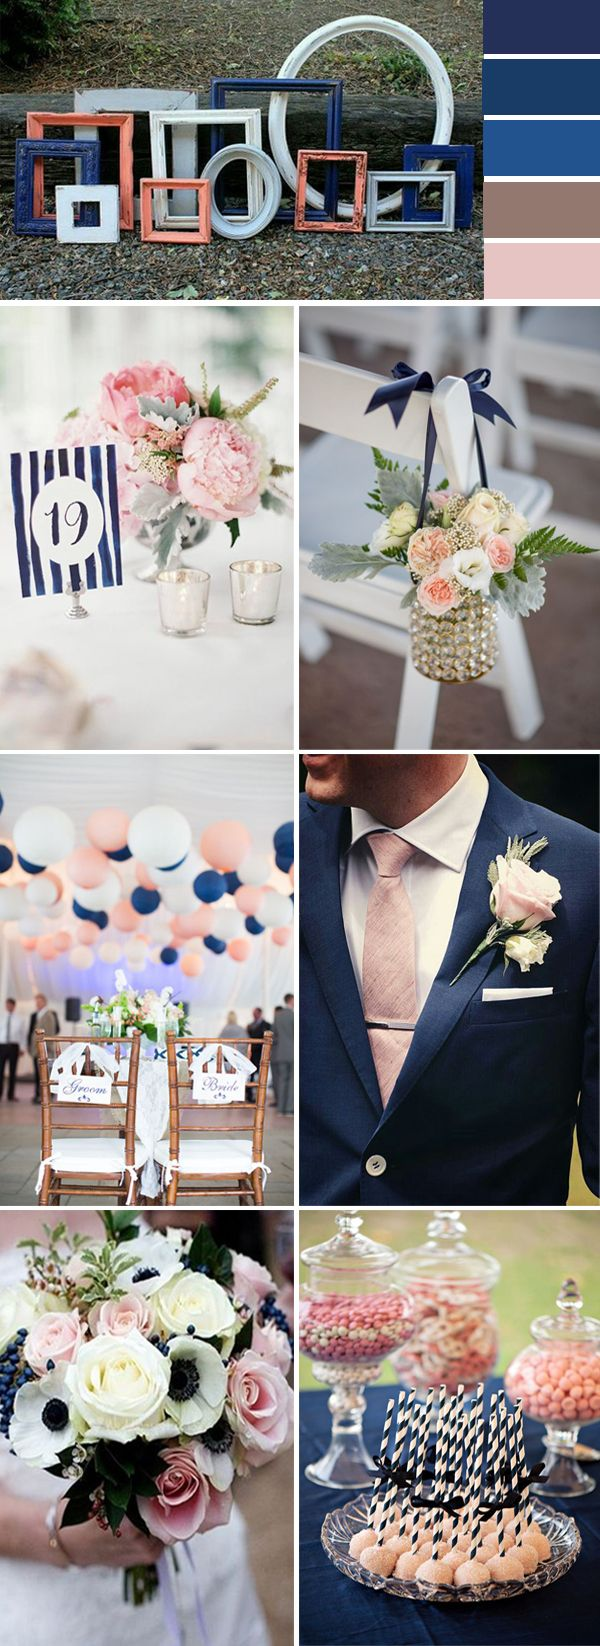 best Свадьбы images on pinterest wedding ideas wedding colors